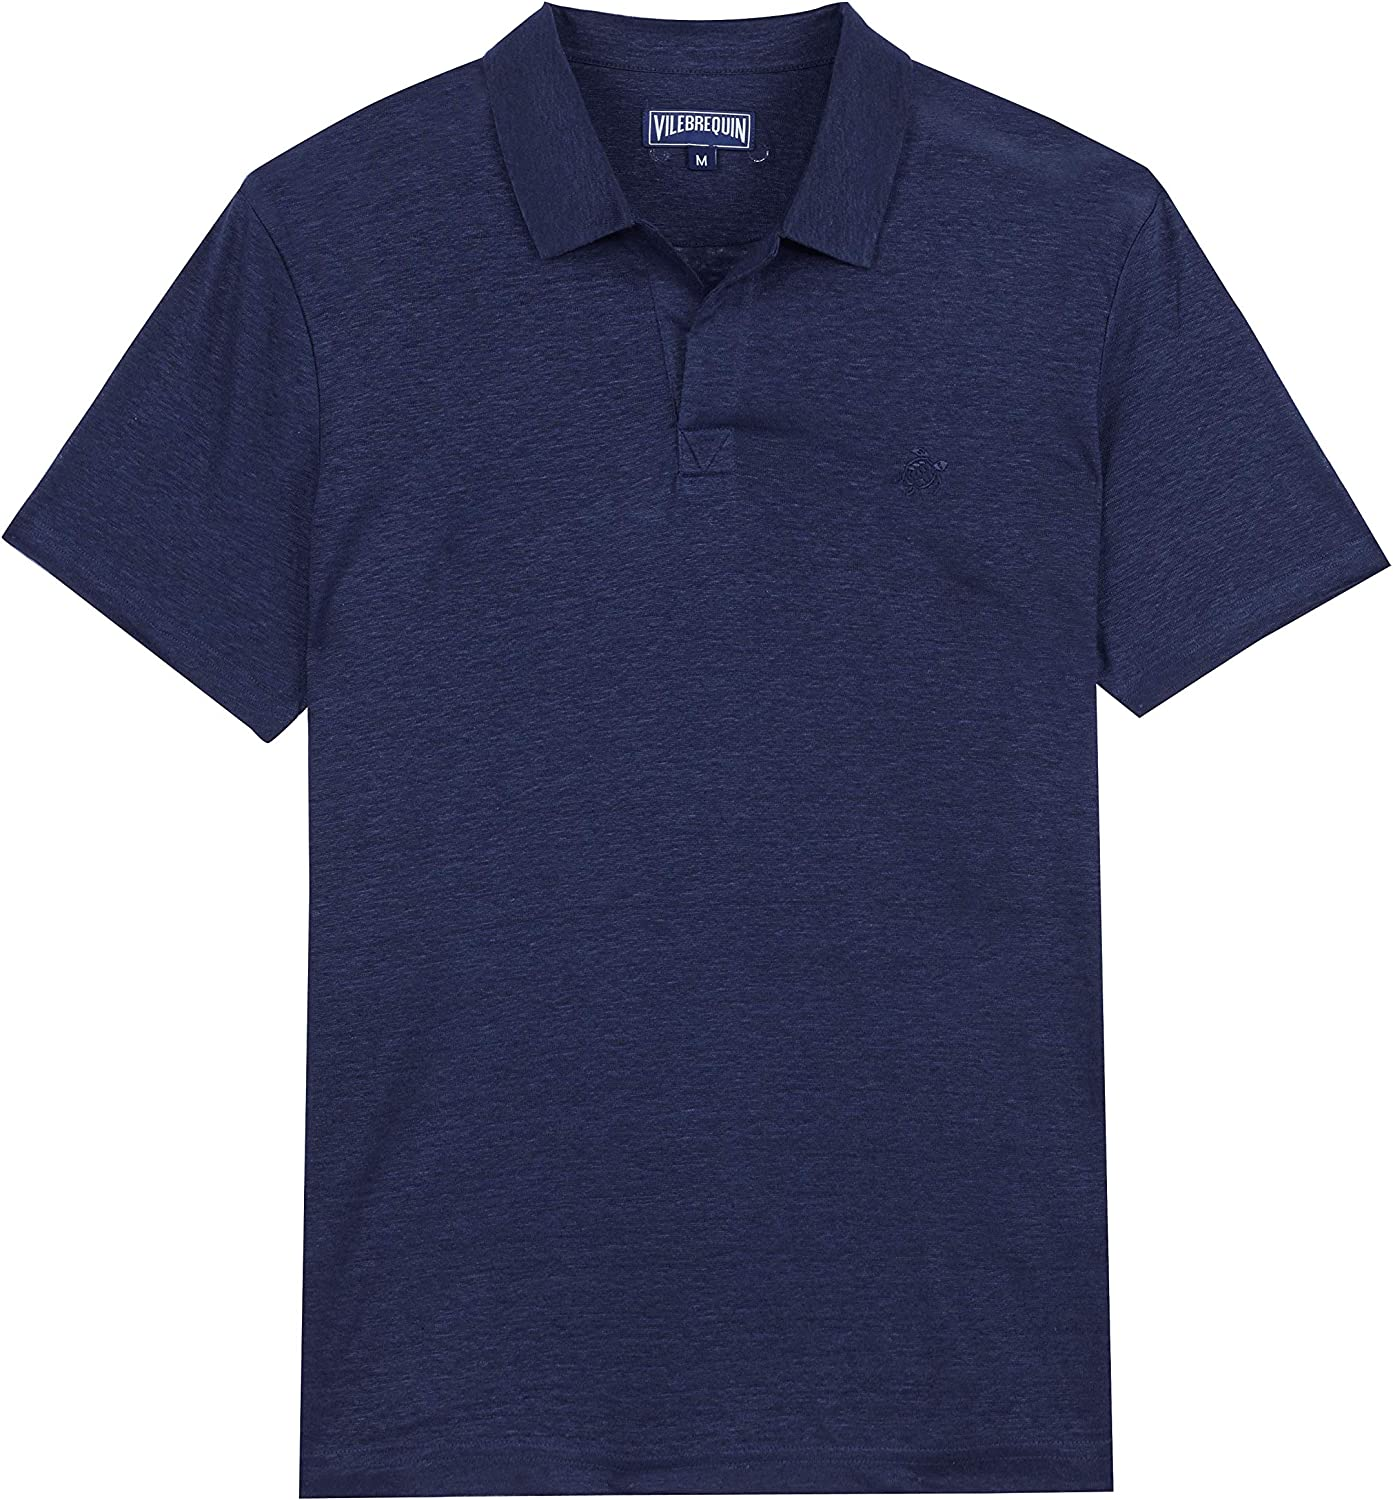 Vilebrequin Credence Men's Pyramid Solid Omaha Mall Polo Linen Jersey